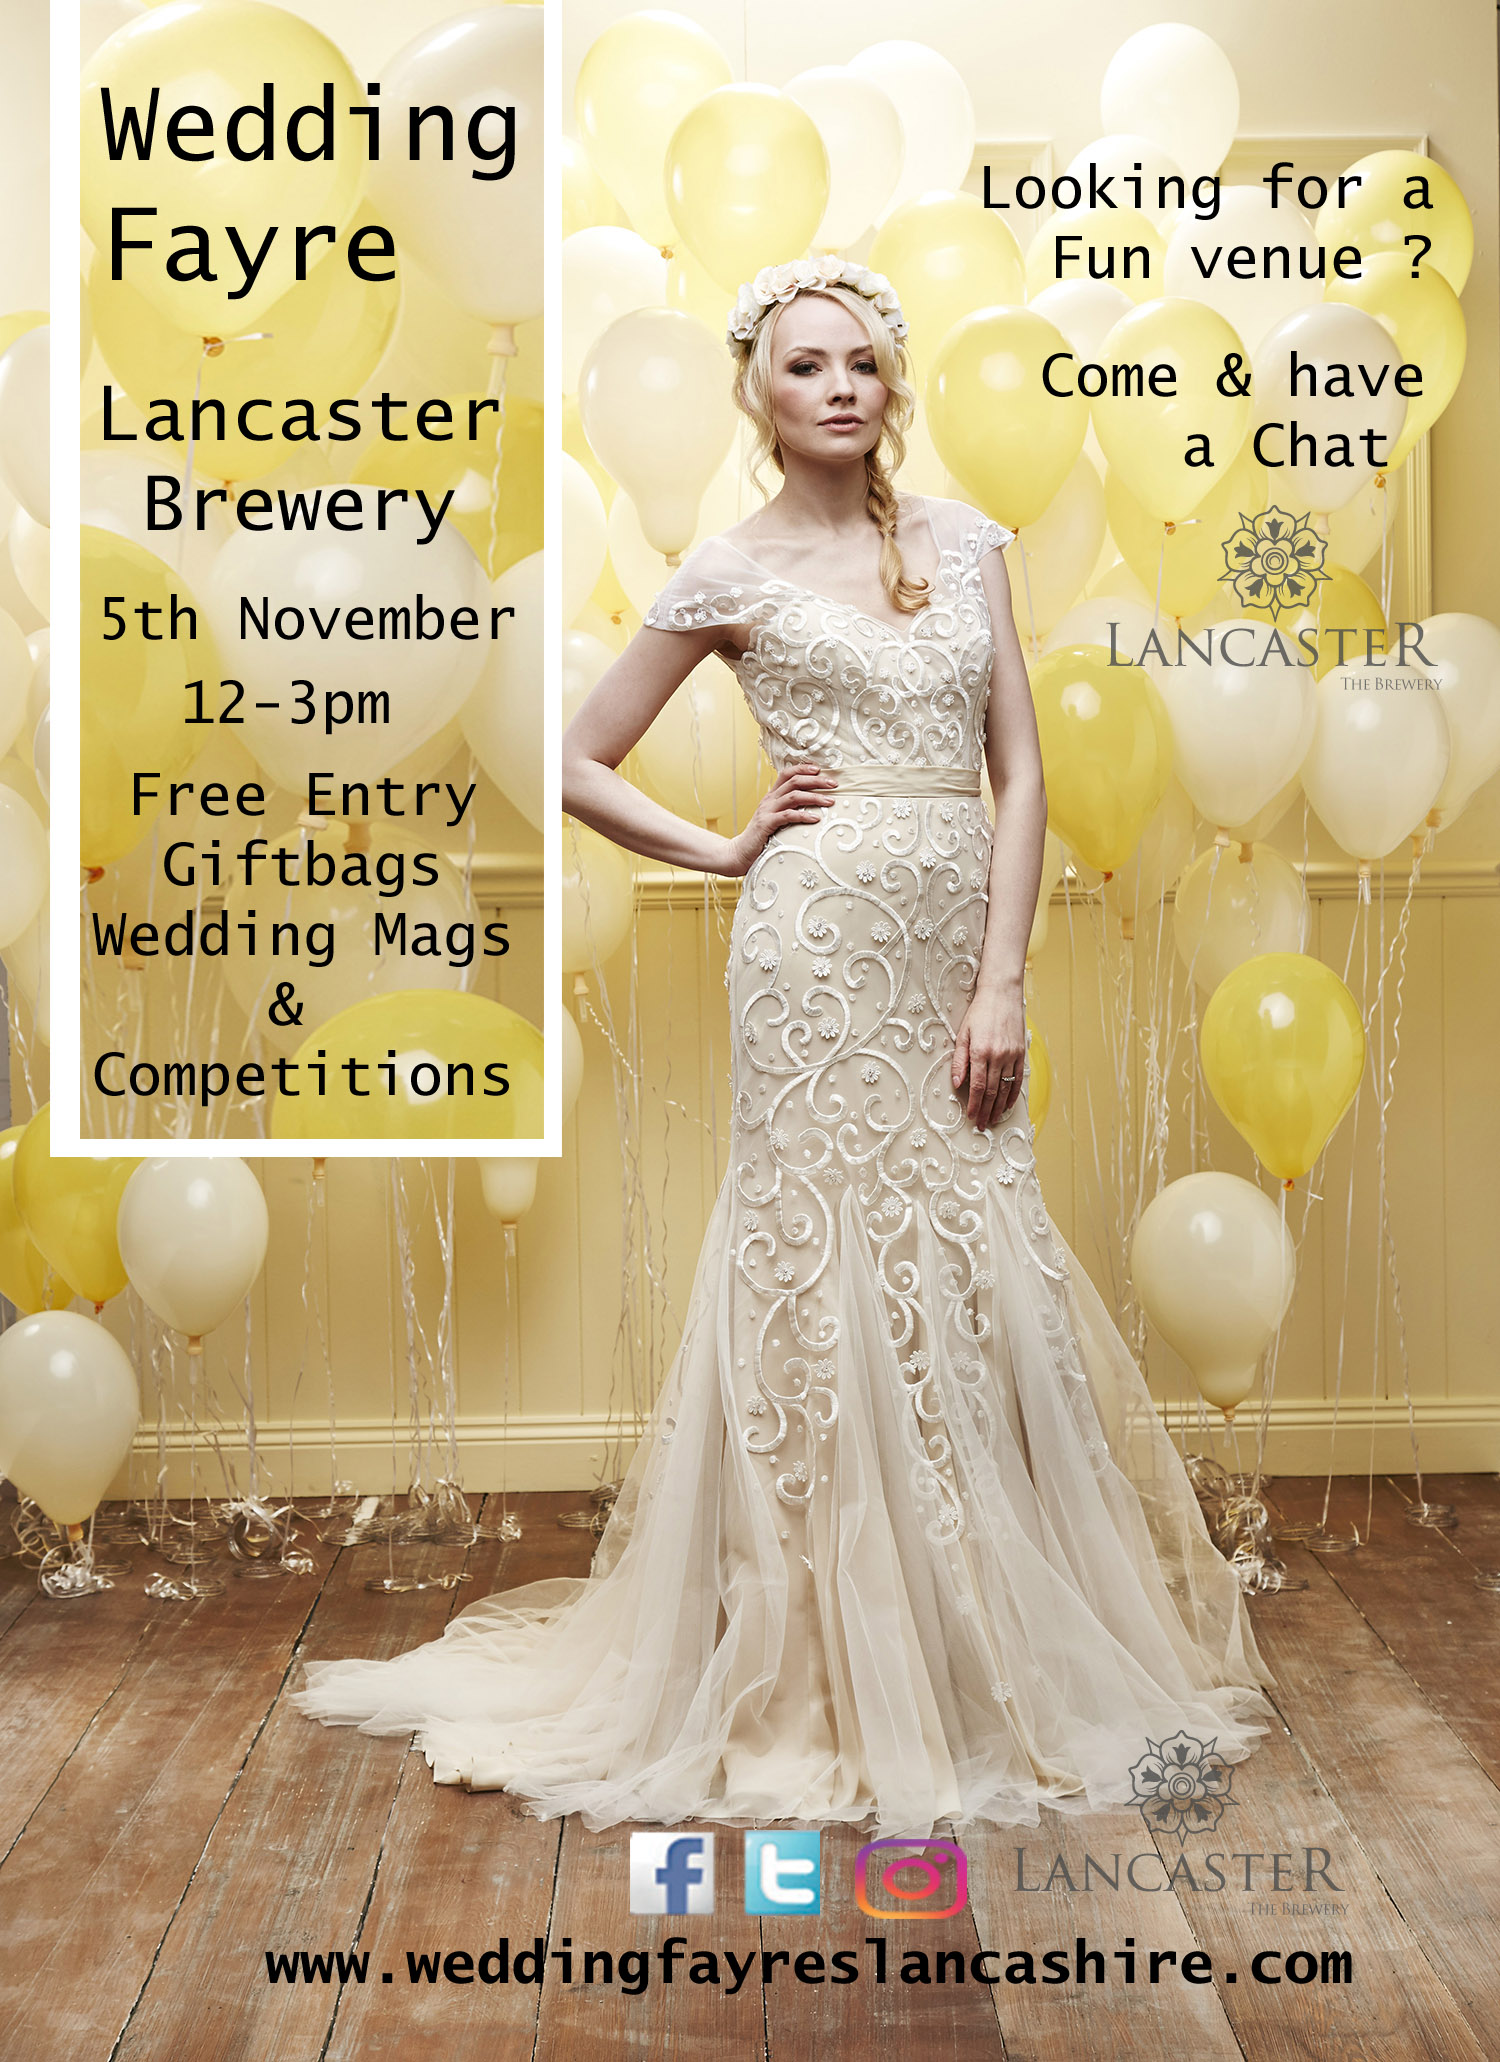 Wedding Fayre Lancaster Brewery - Lancaster